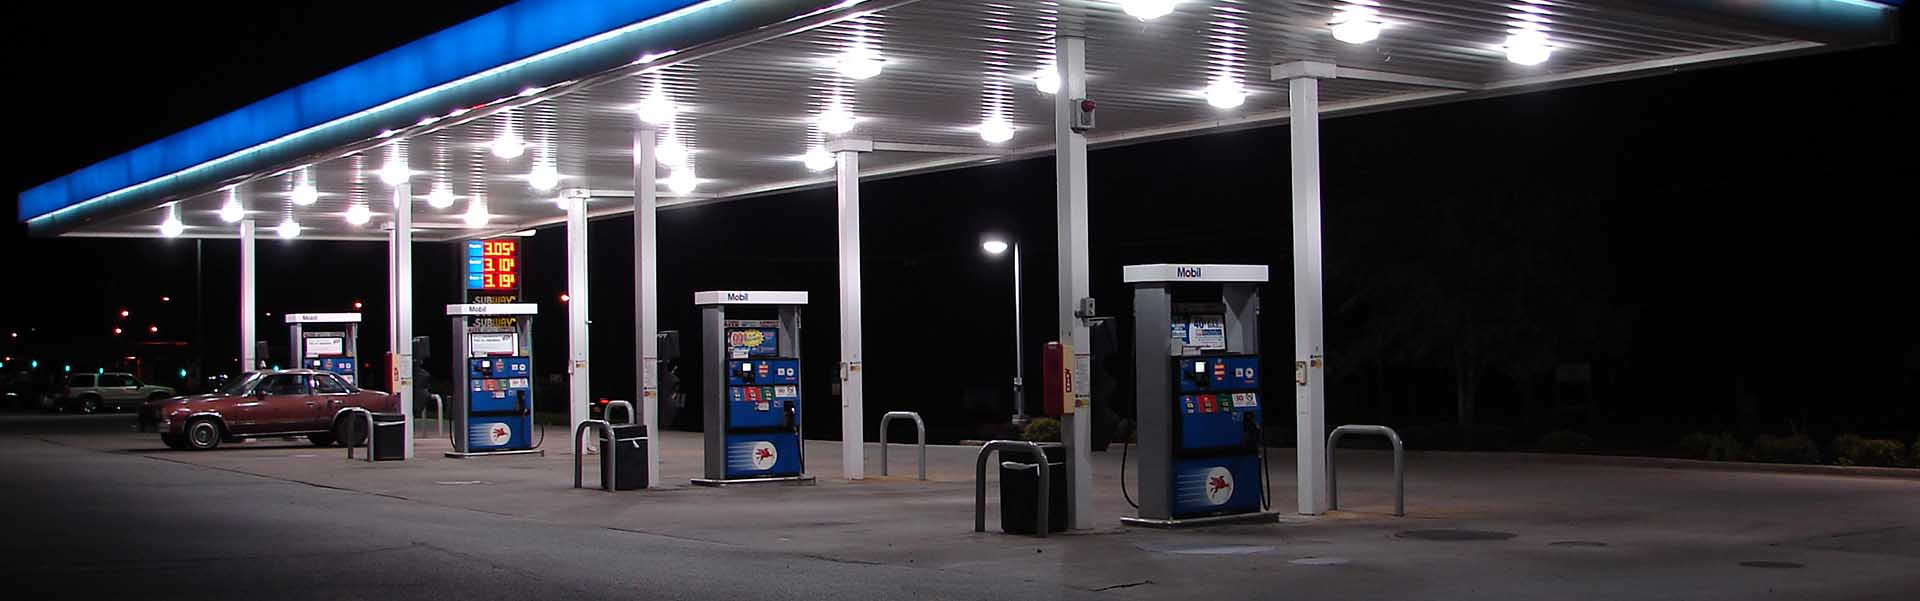 Plan to visit gas station before returning your car